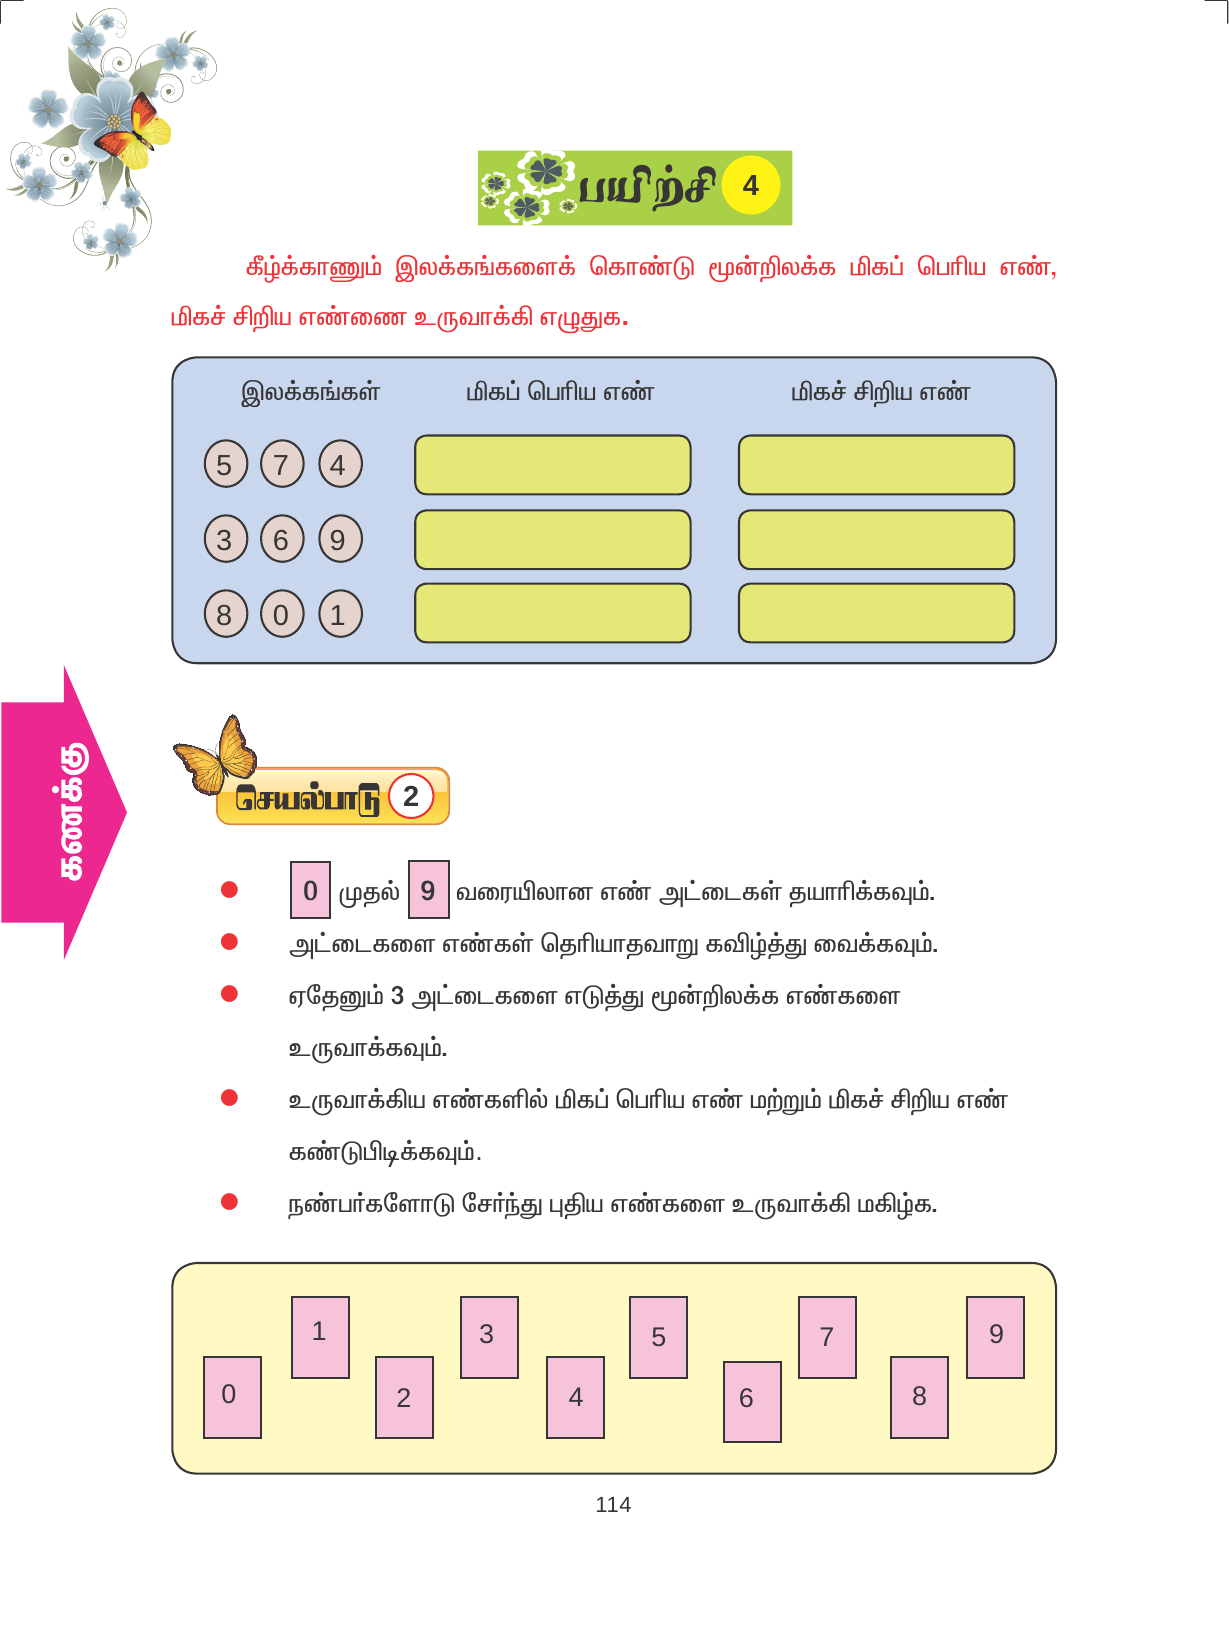 Grade / Standard / Class 03, Tamil Medium, Mathematics Text Book II